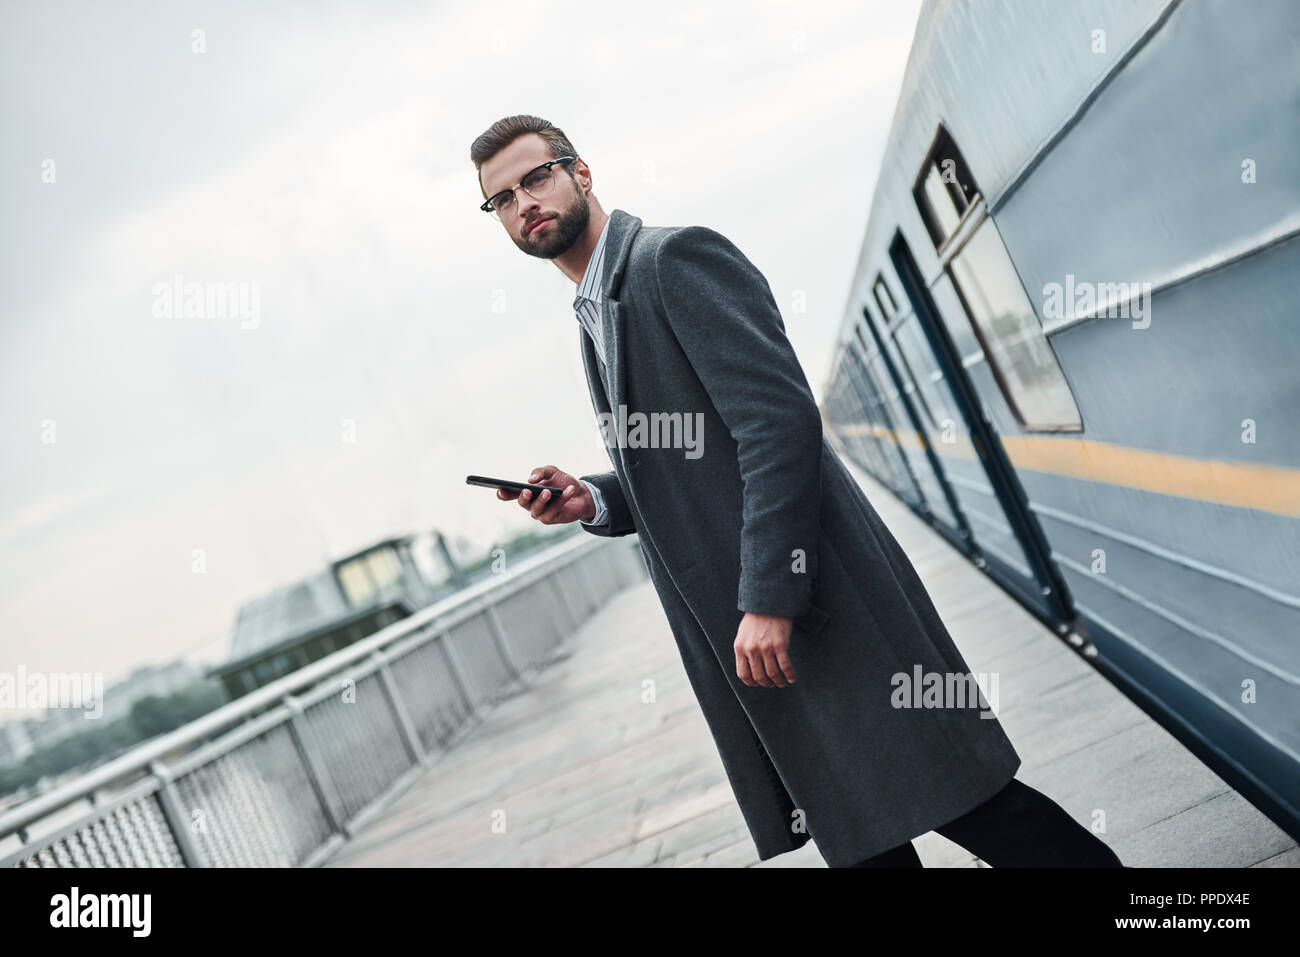 Business trip. Young businessman standing near railway holding smartphone looking aside pensive - Stock Image